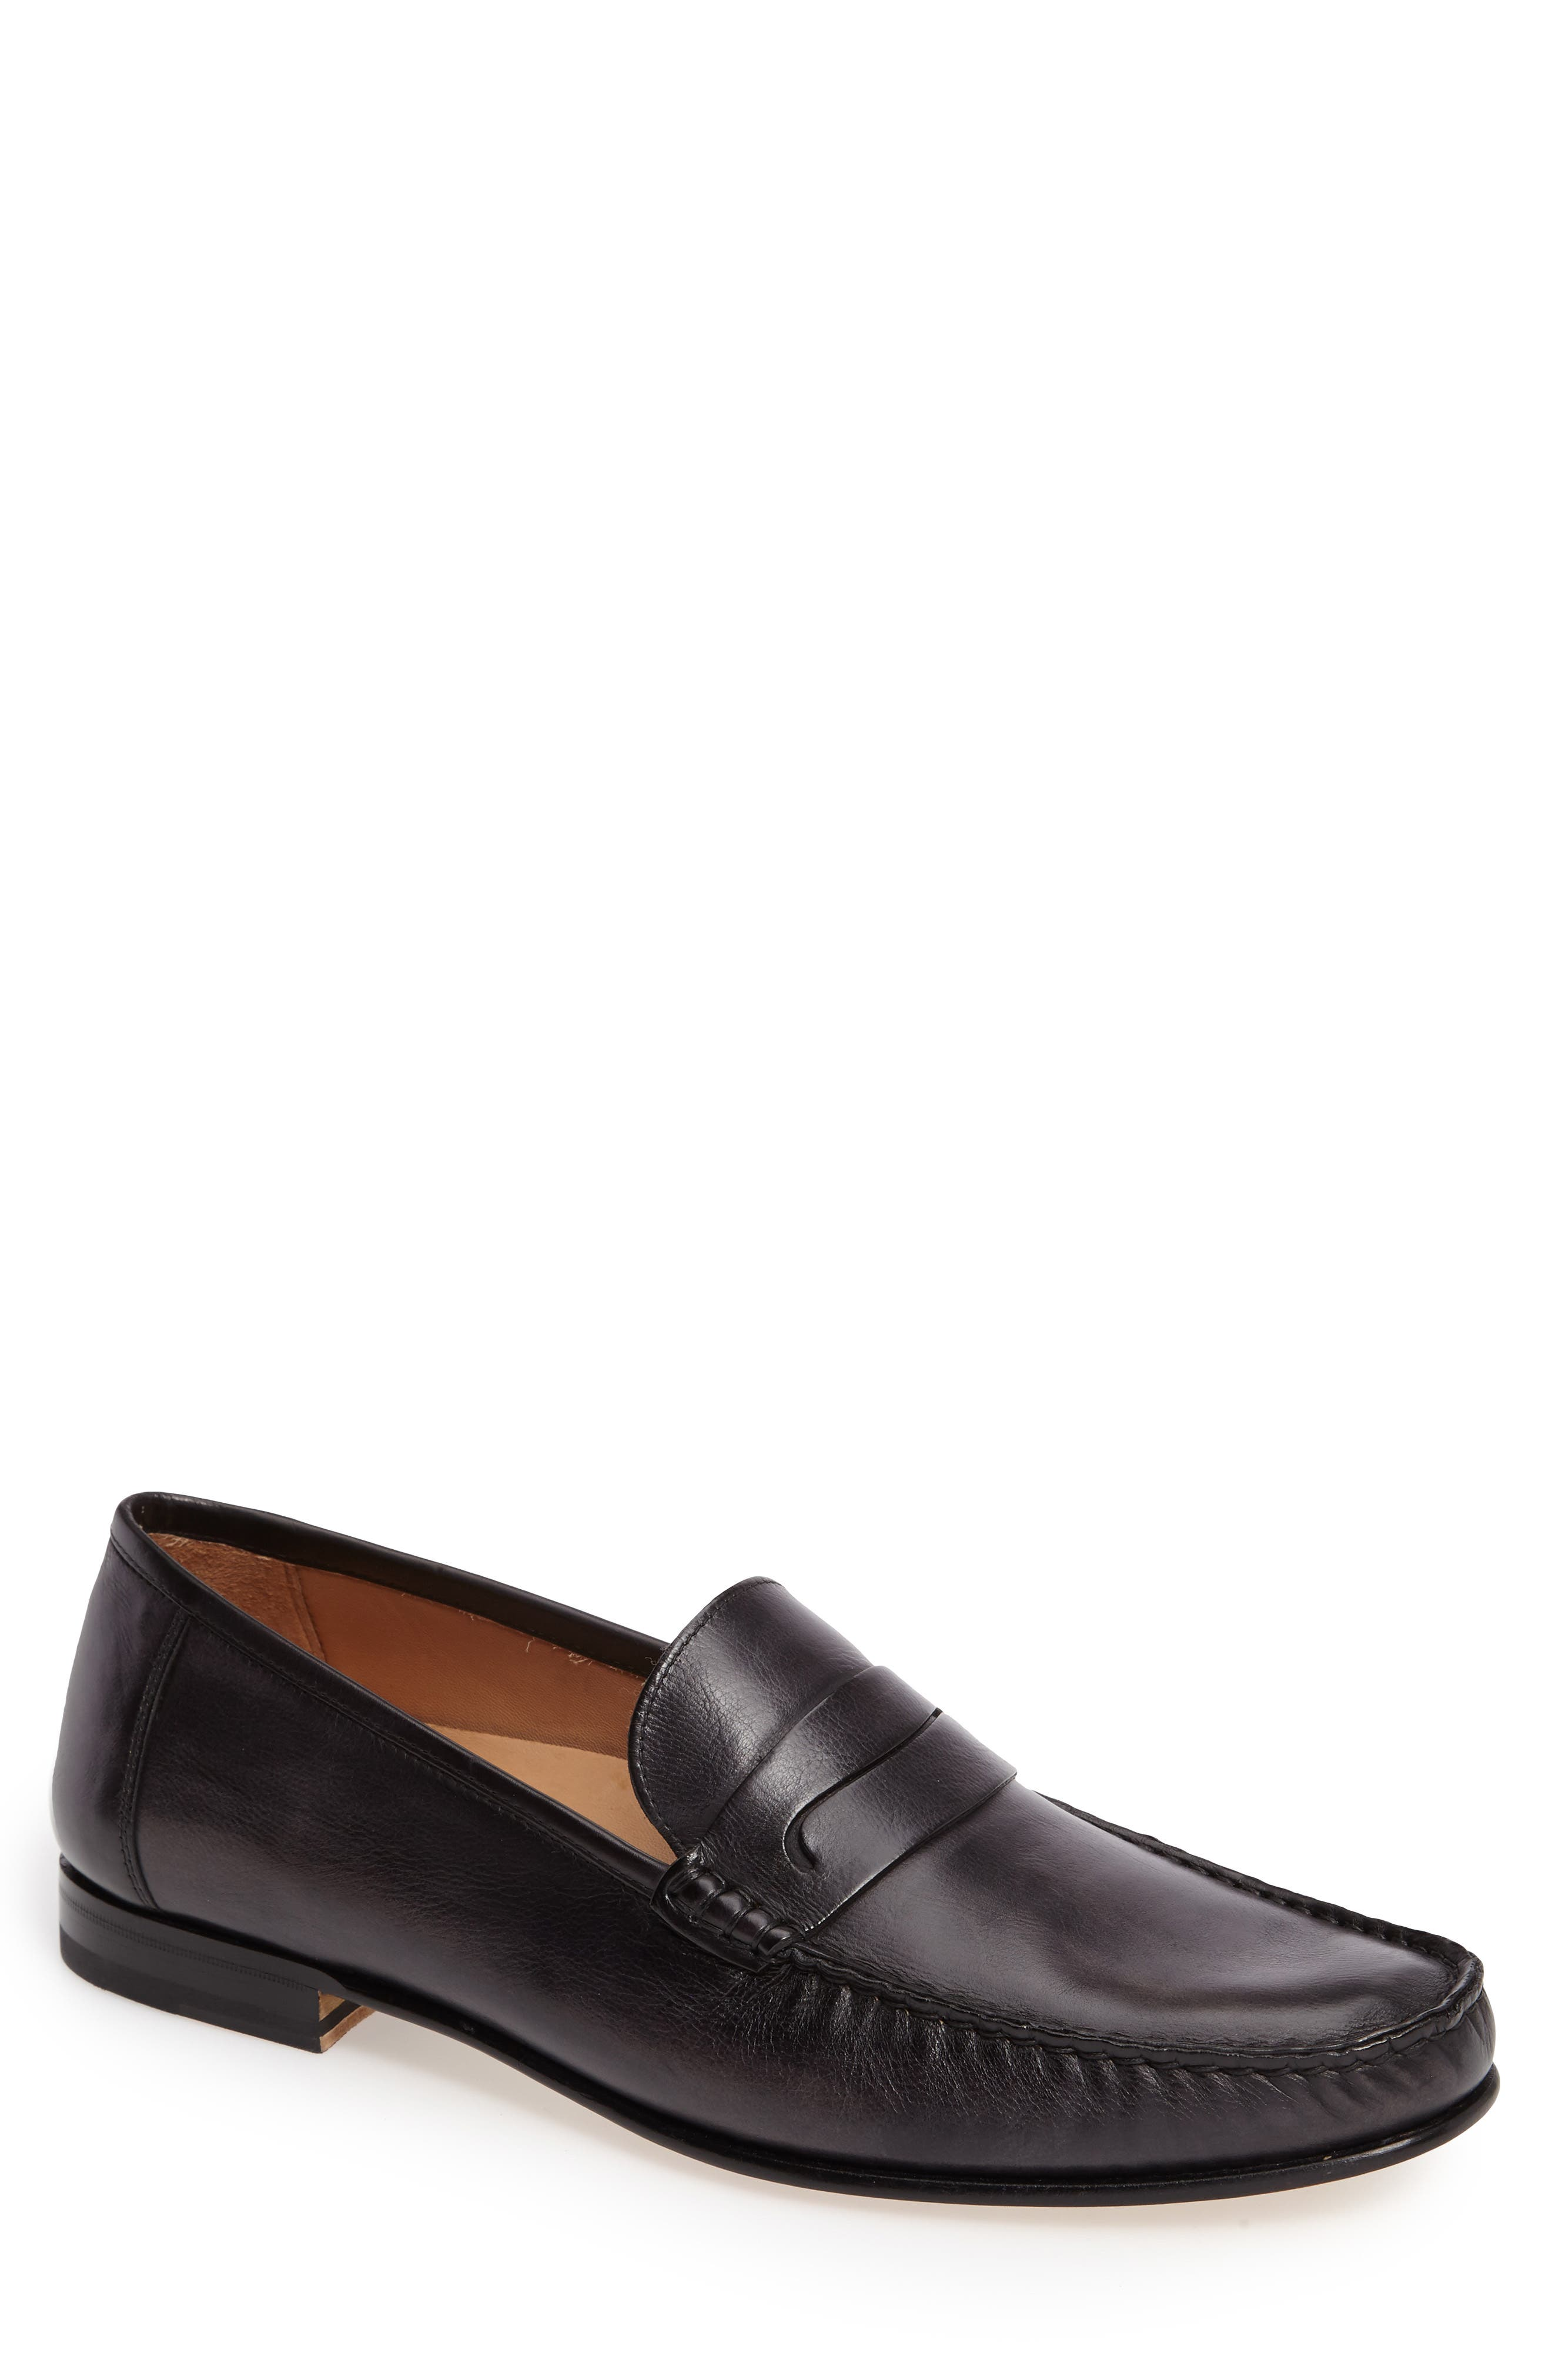 Alternate Image 1 Selected - Mezlan Pauli Classic Penny Loafer (Men)